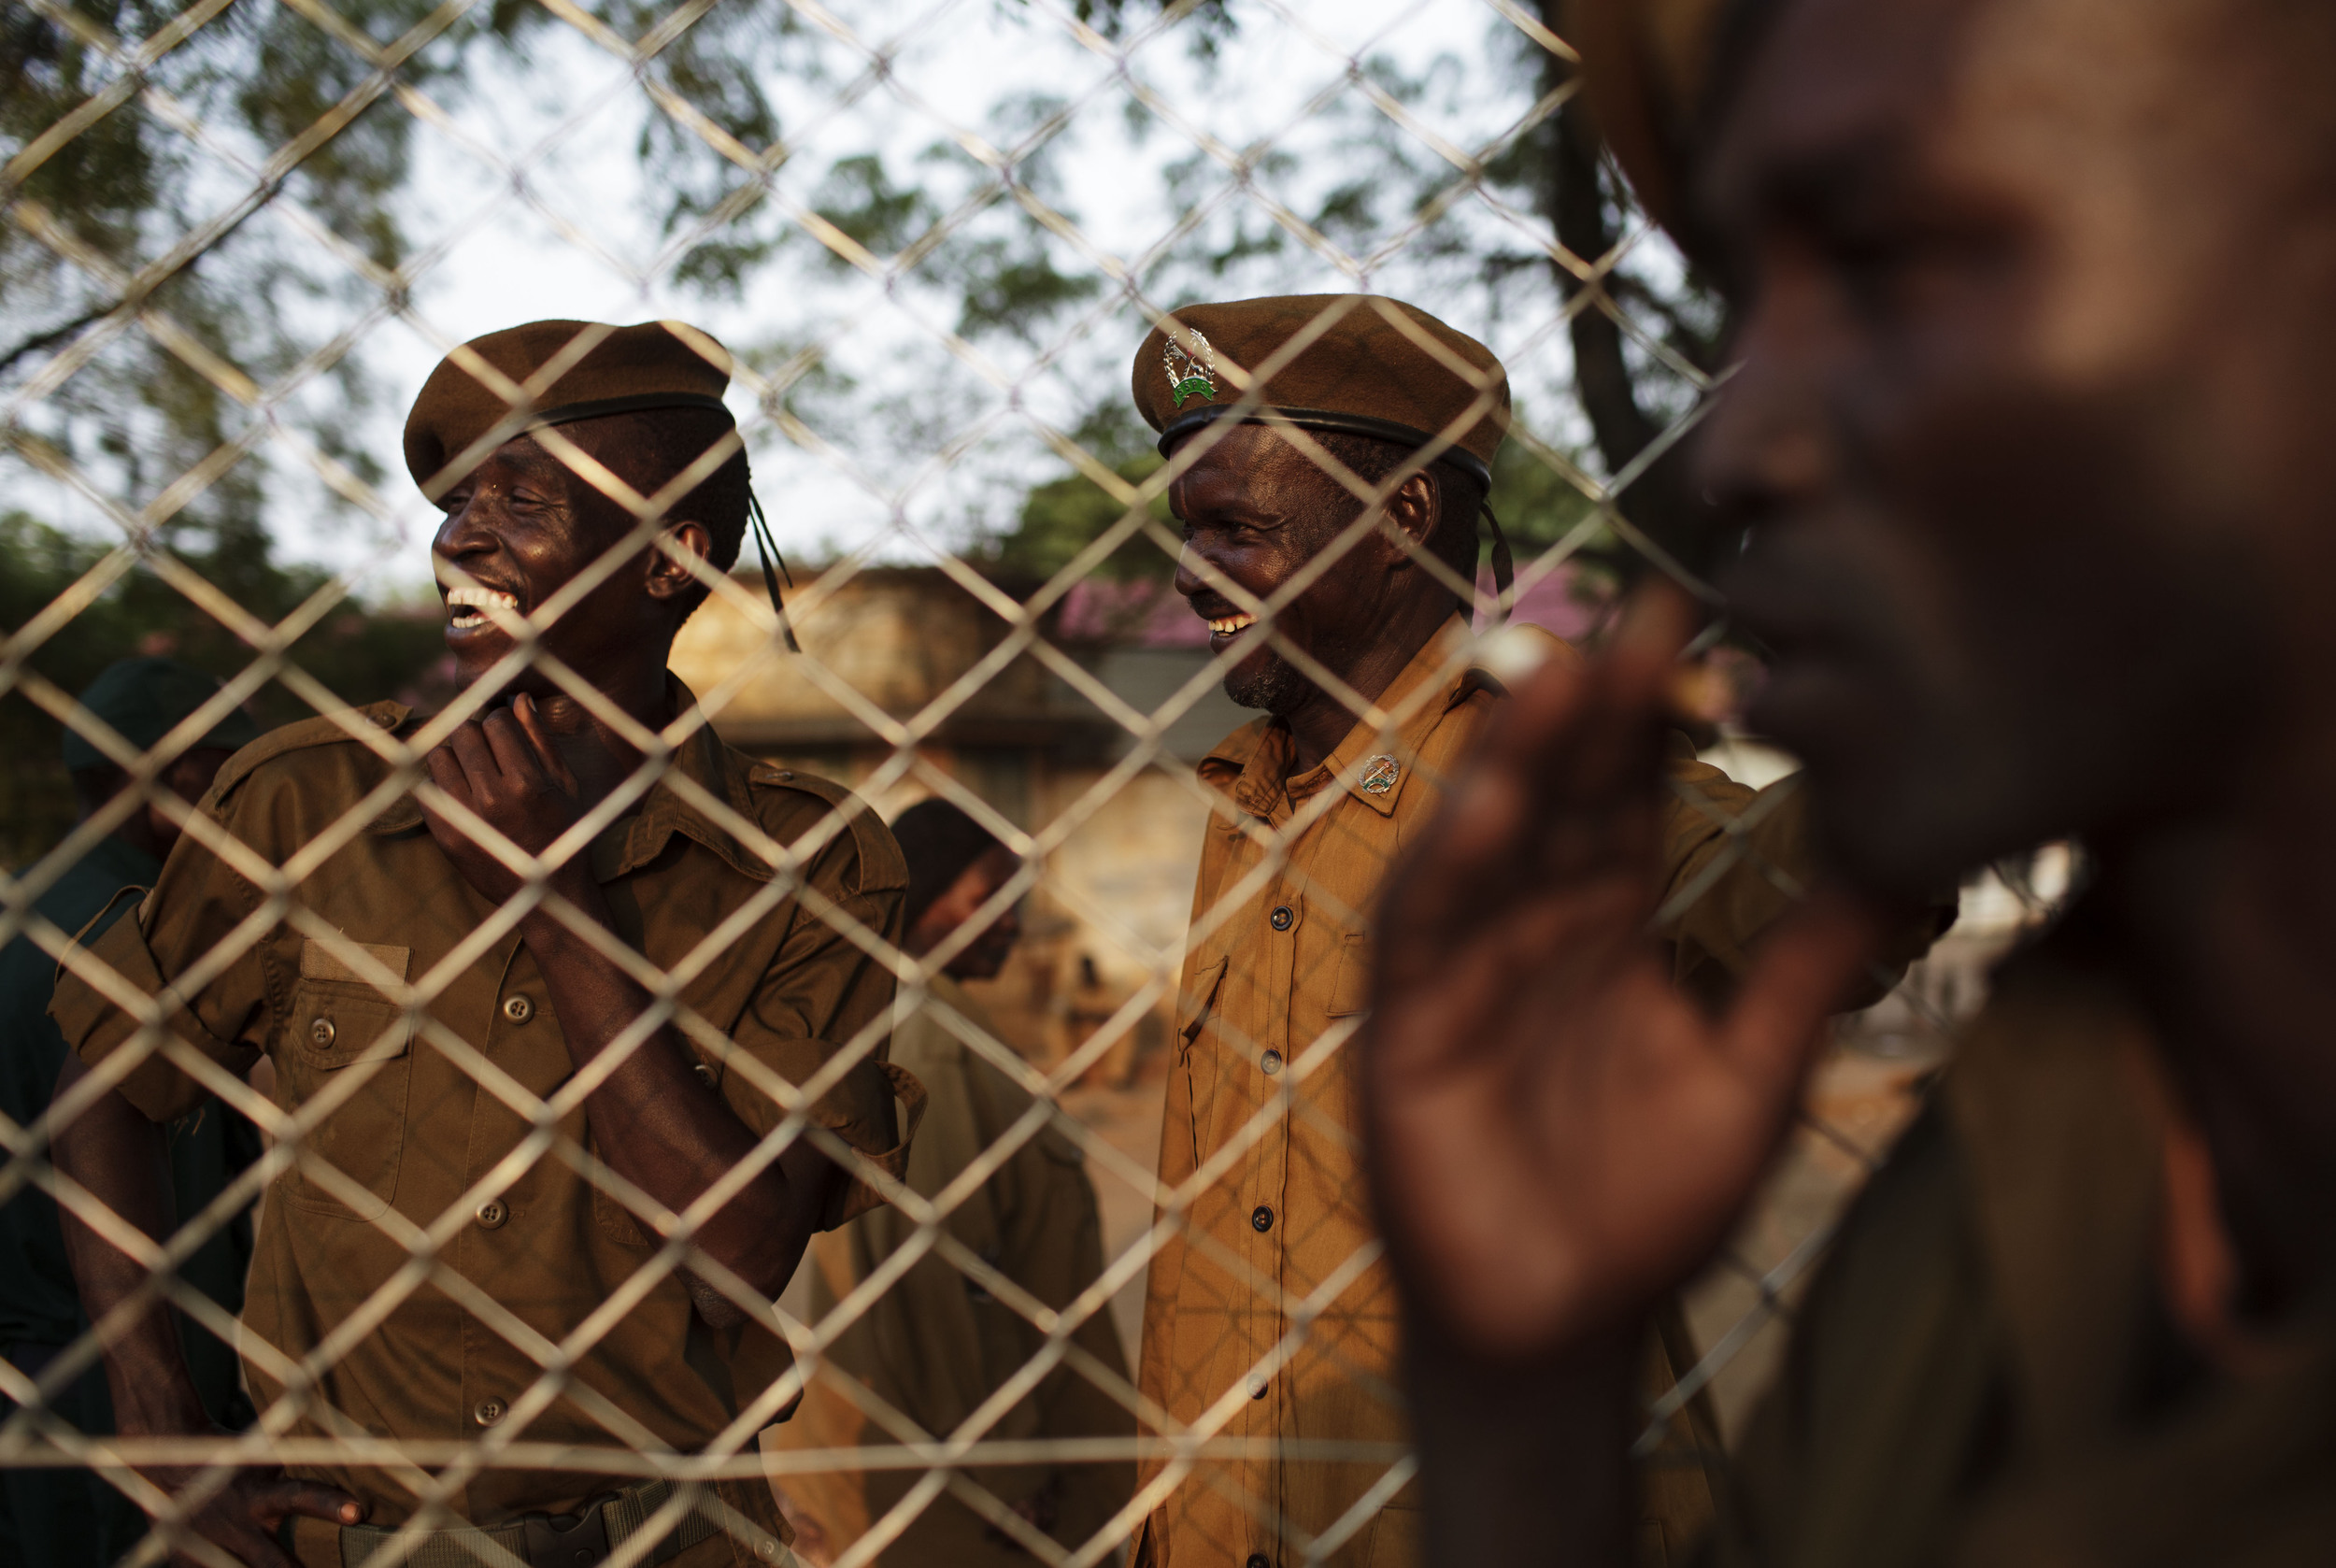 Prison Service officers attend celebrations by Bari community members on the eve of South Sudan's declaration of independence in Juba, southern Sudan, Friday, July 8, 2011. (AP Photo/David Azia)